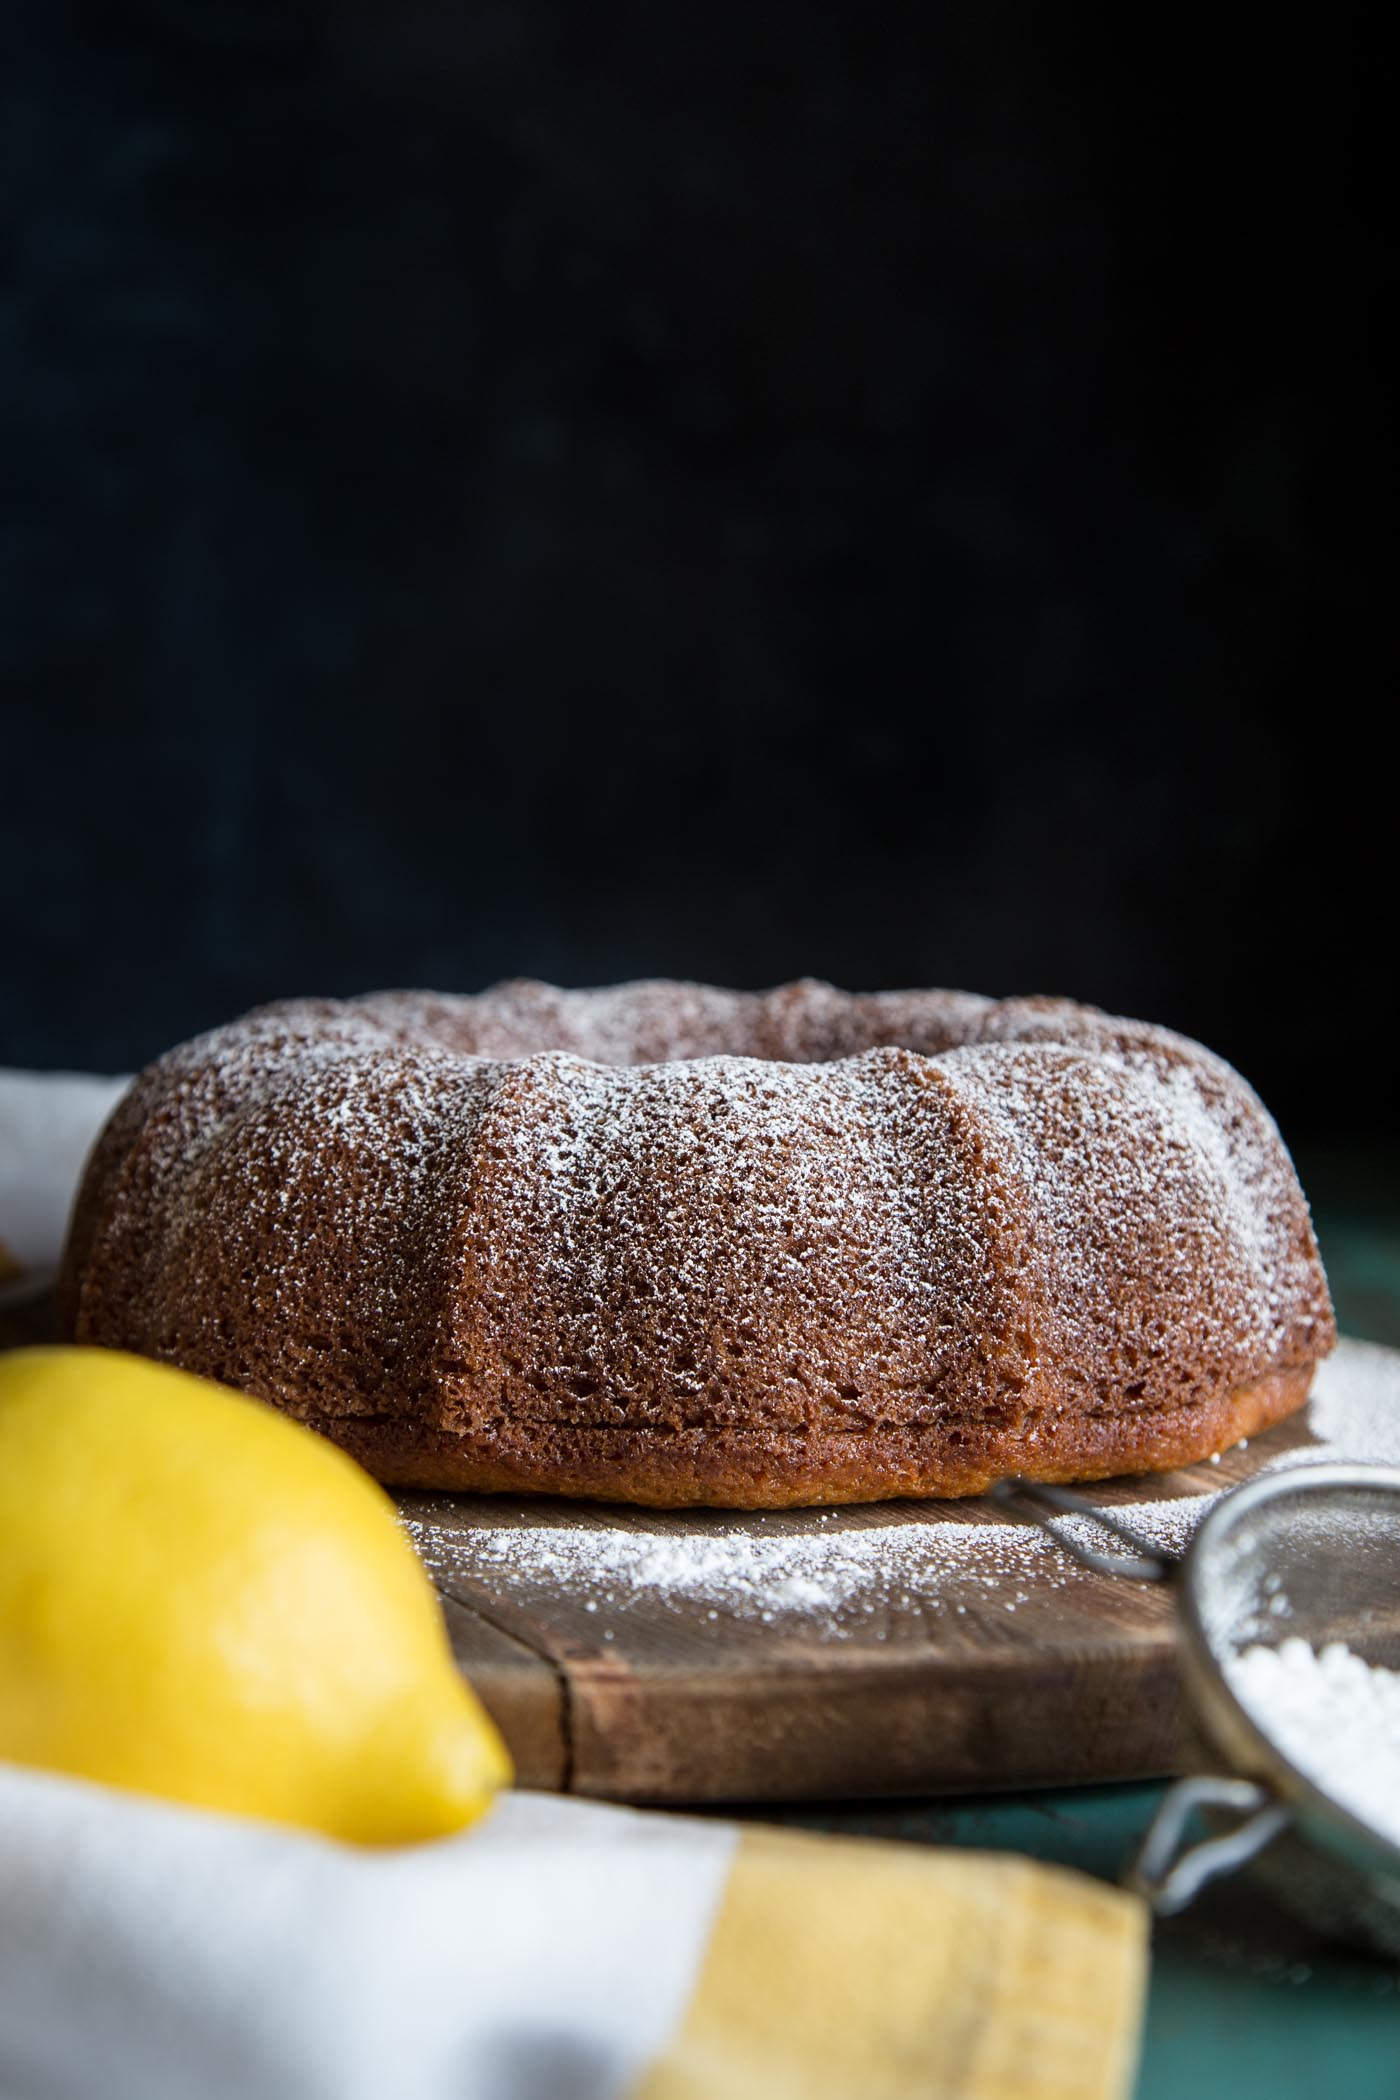 Lemon bundt cake without glaze